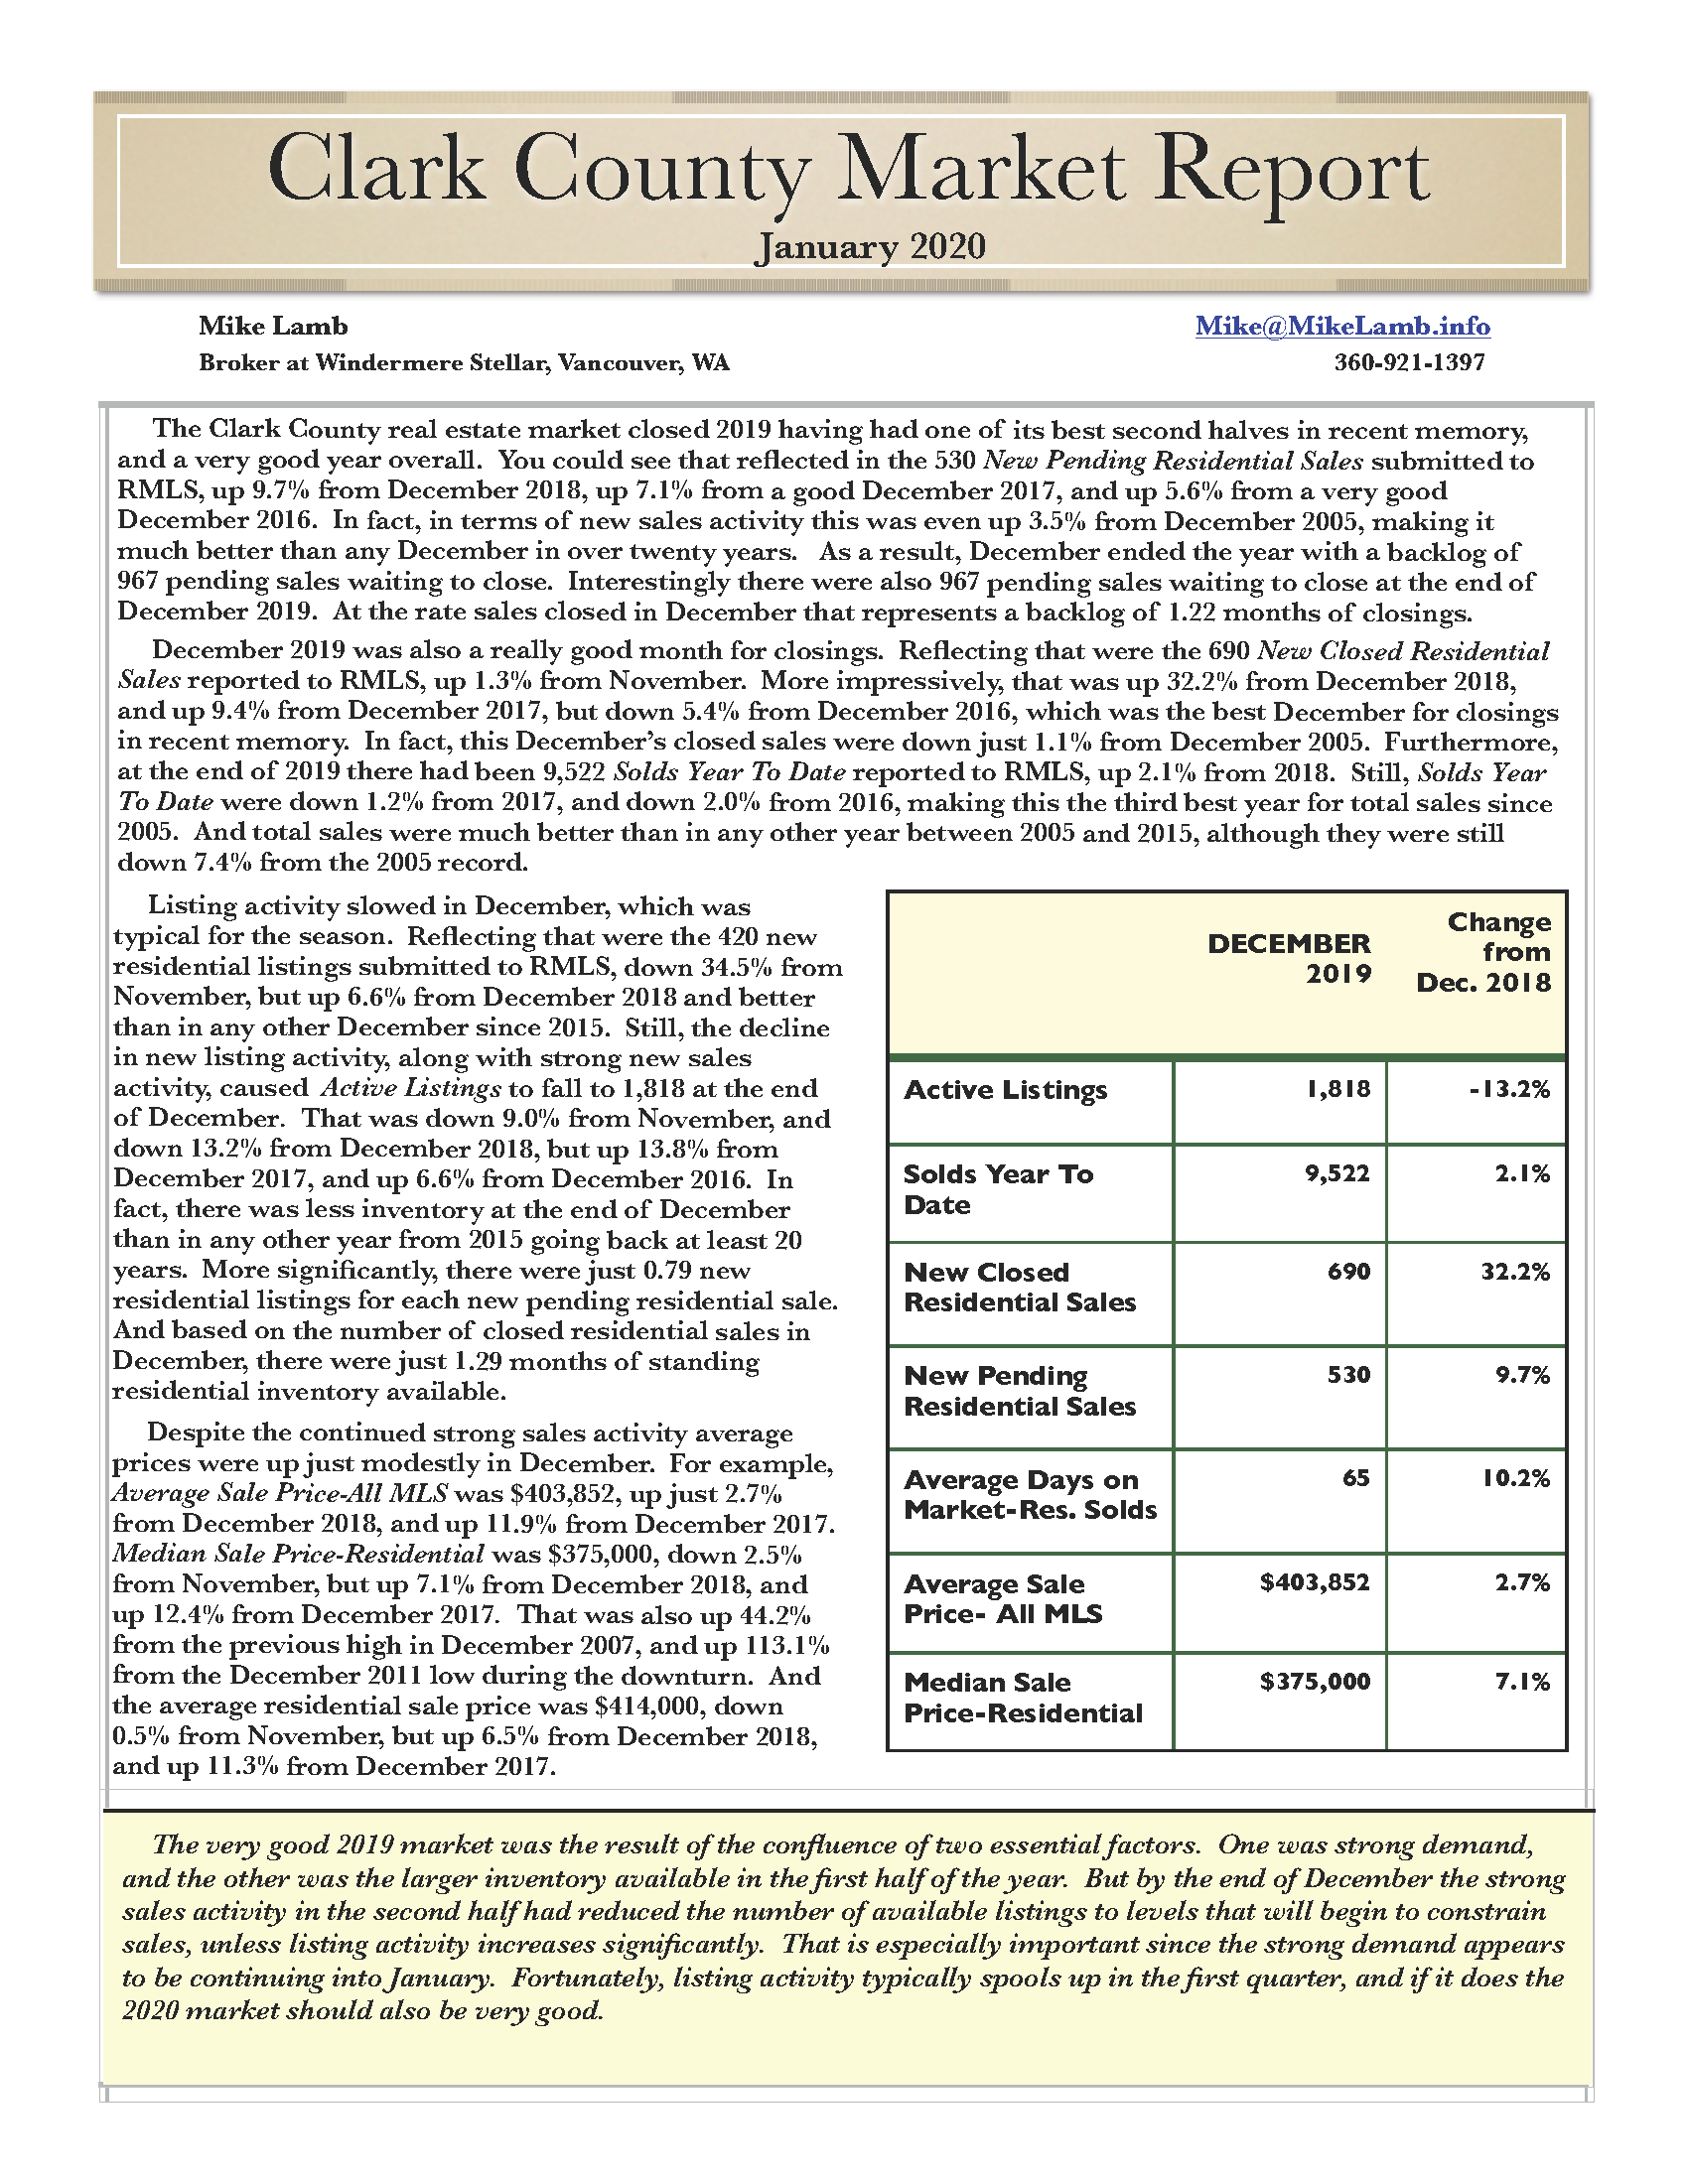 January 2020 Clark County Market Report by Mike Lamb